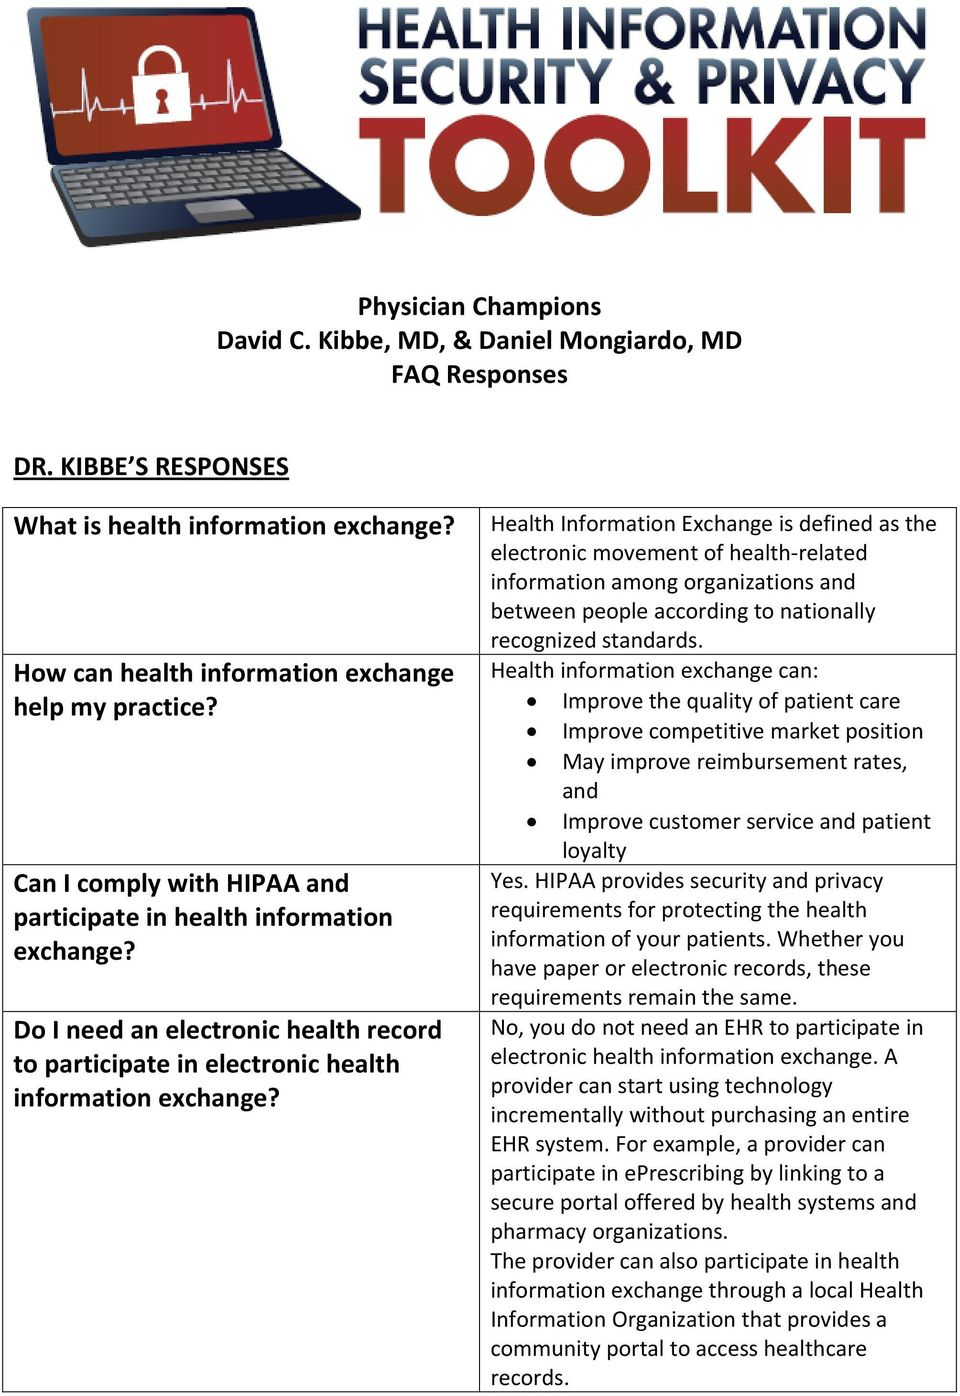 Health Information Exchange is defined as the electronic movement of health related information among organizations and between people according to nationally recognized standards.